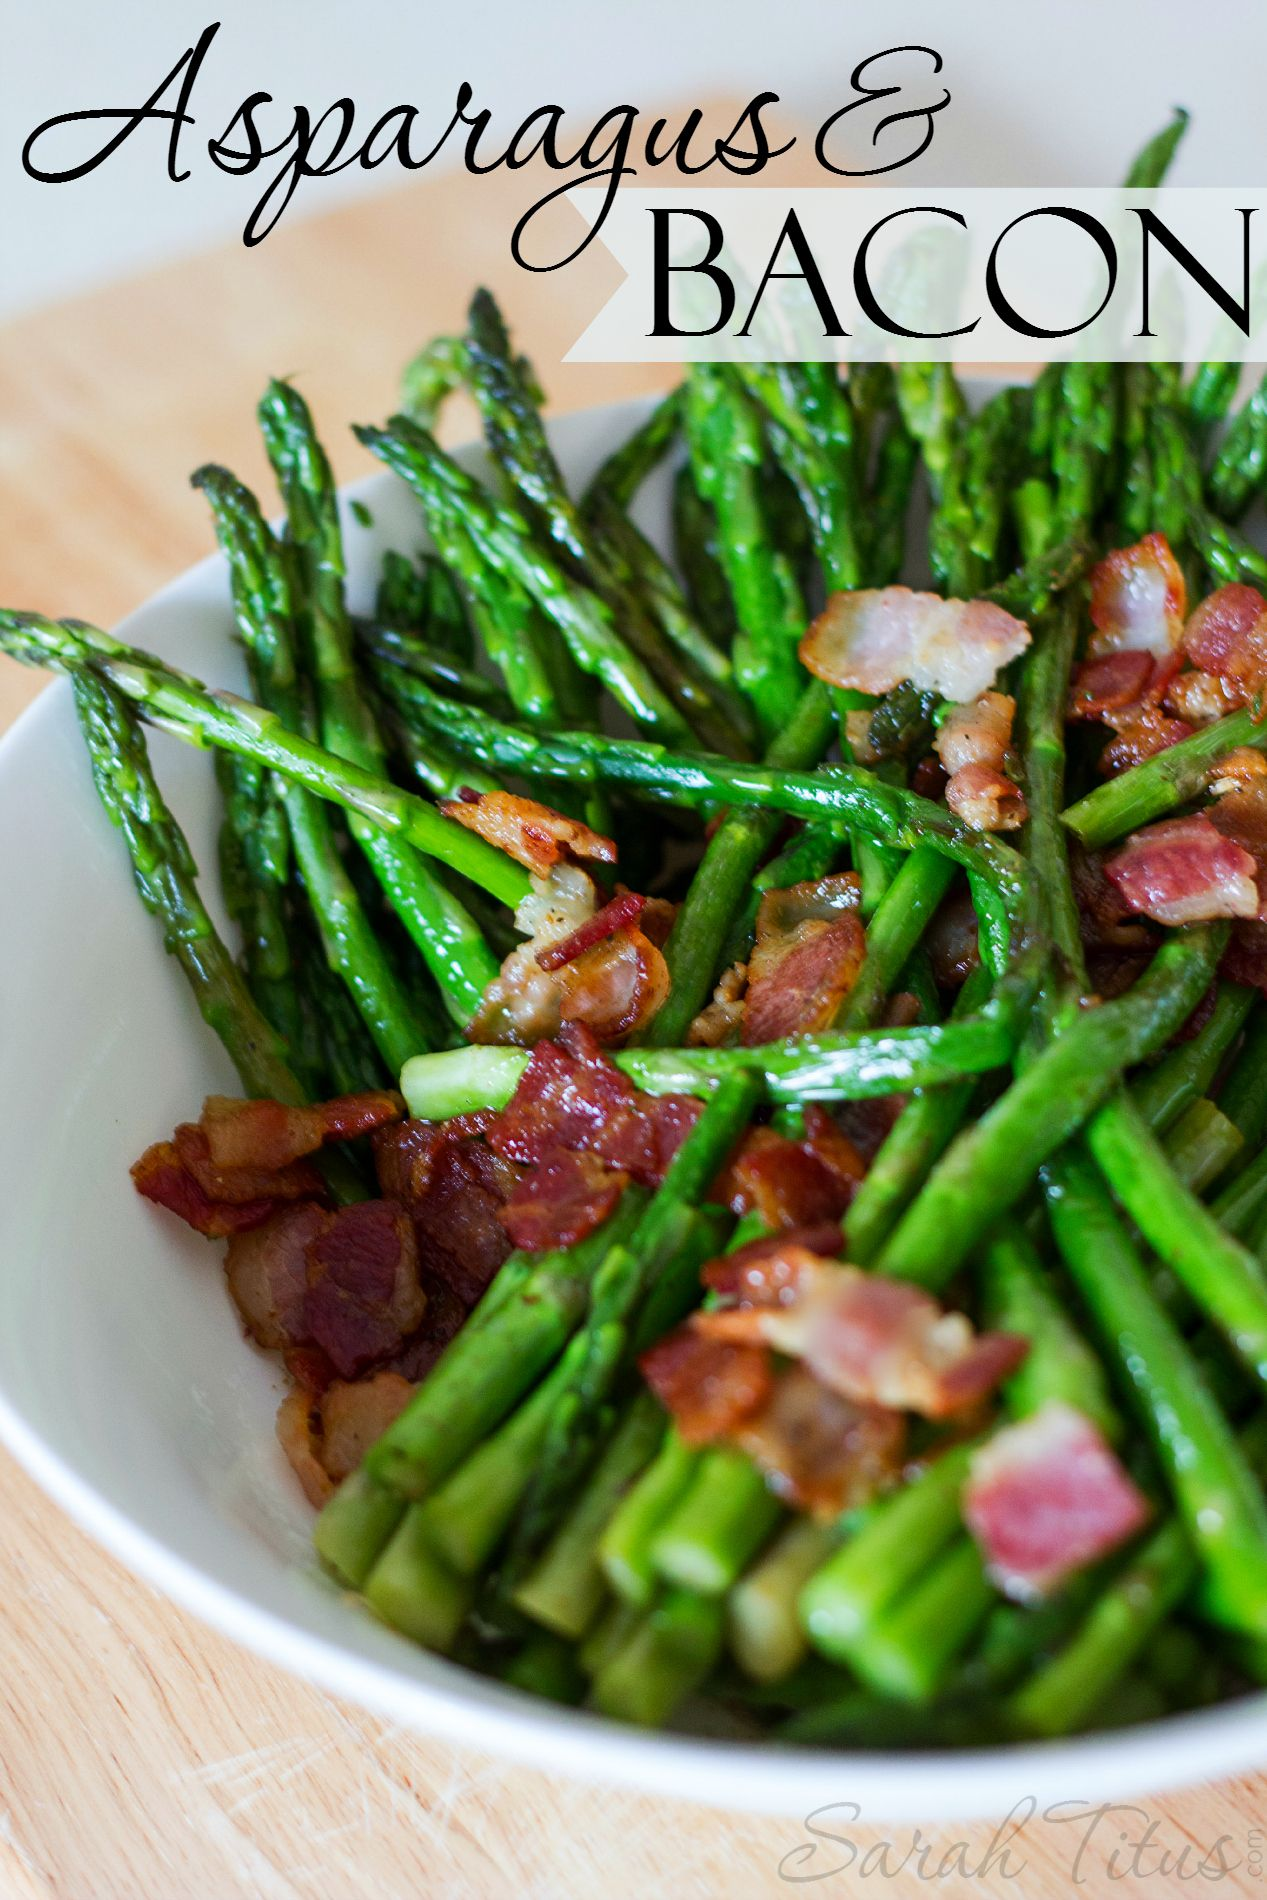 Asparagus Recipes Baked Parmesan Side Dishes